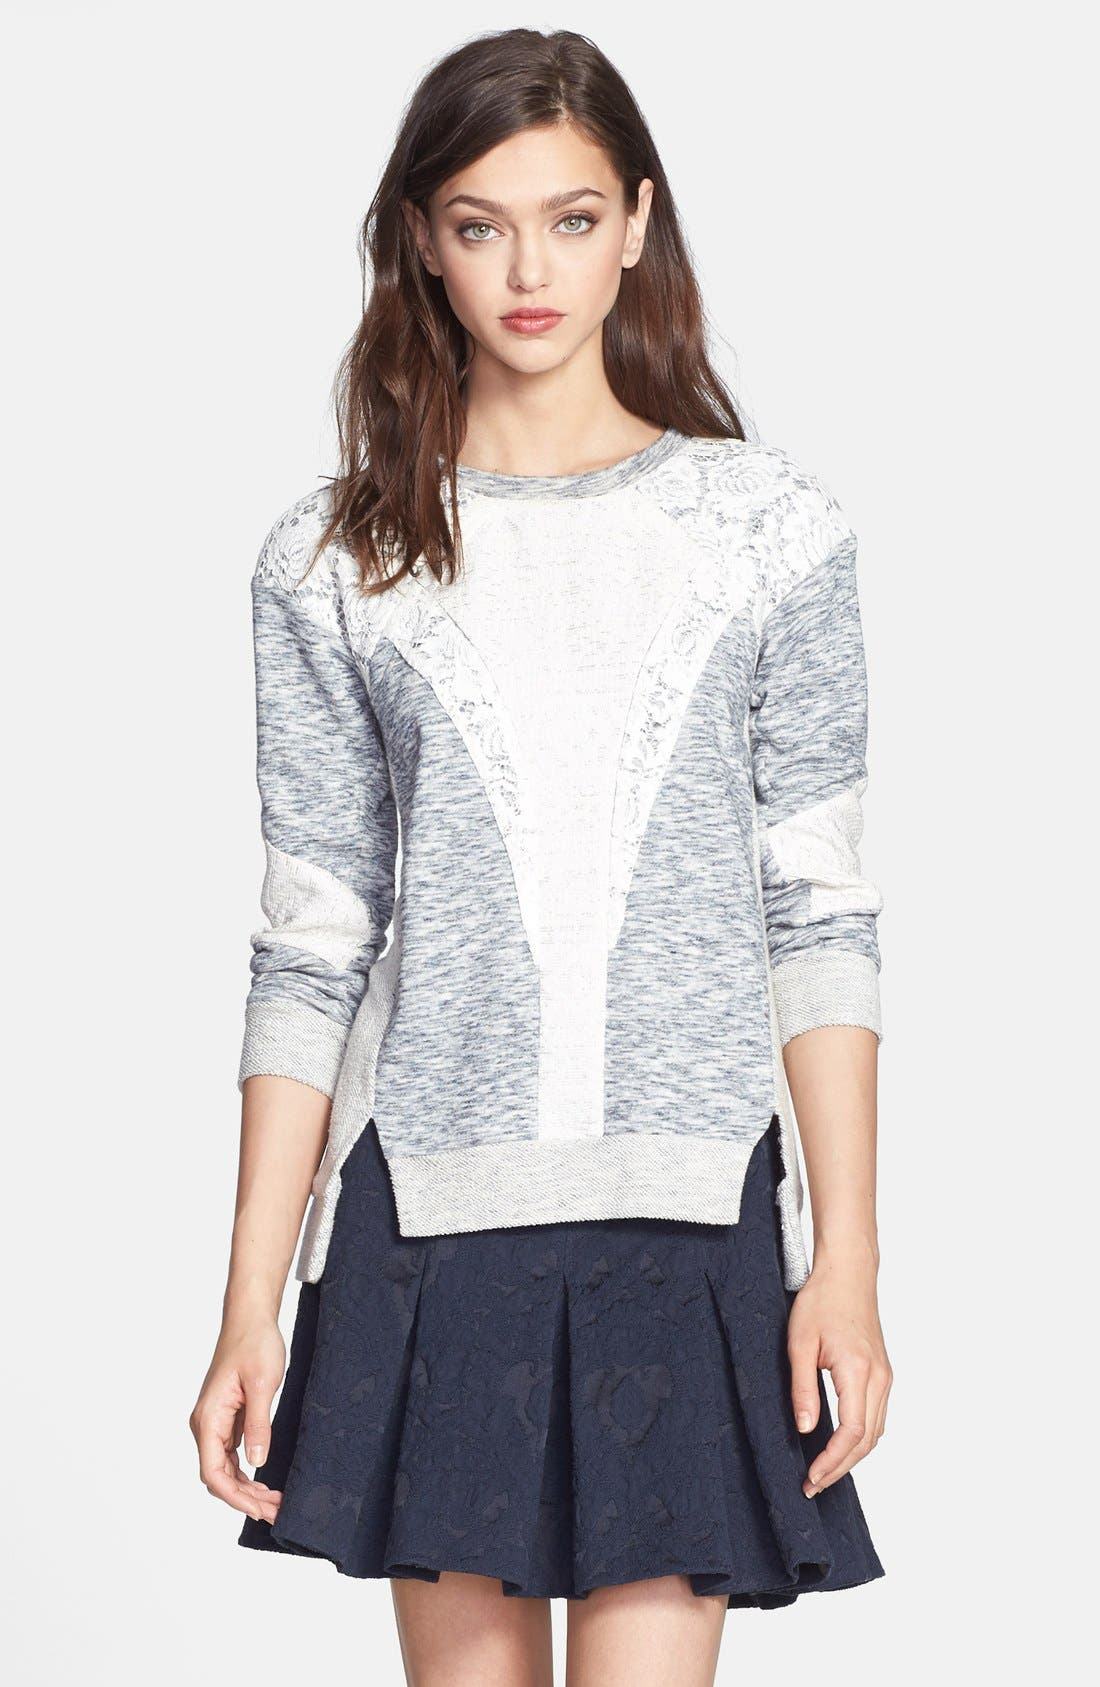 Alternate Image 1 Selected - Rebecca Taylor Lace Insert Sweatshirt